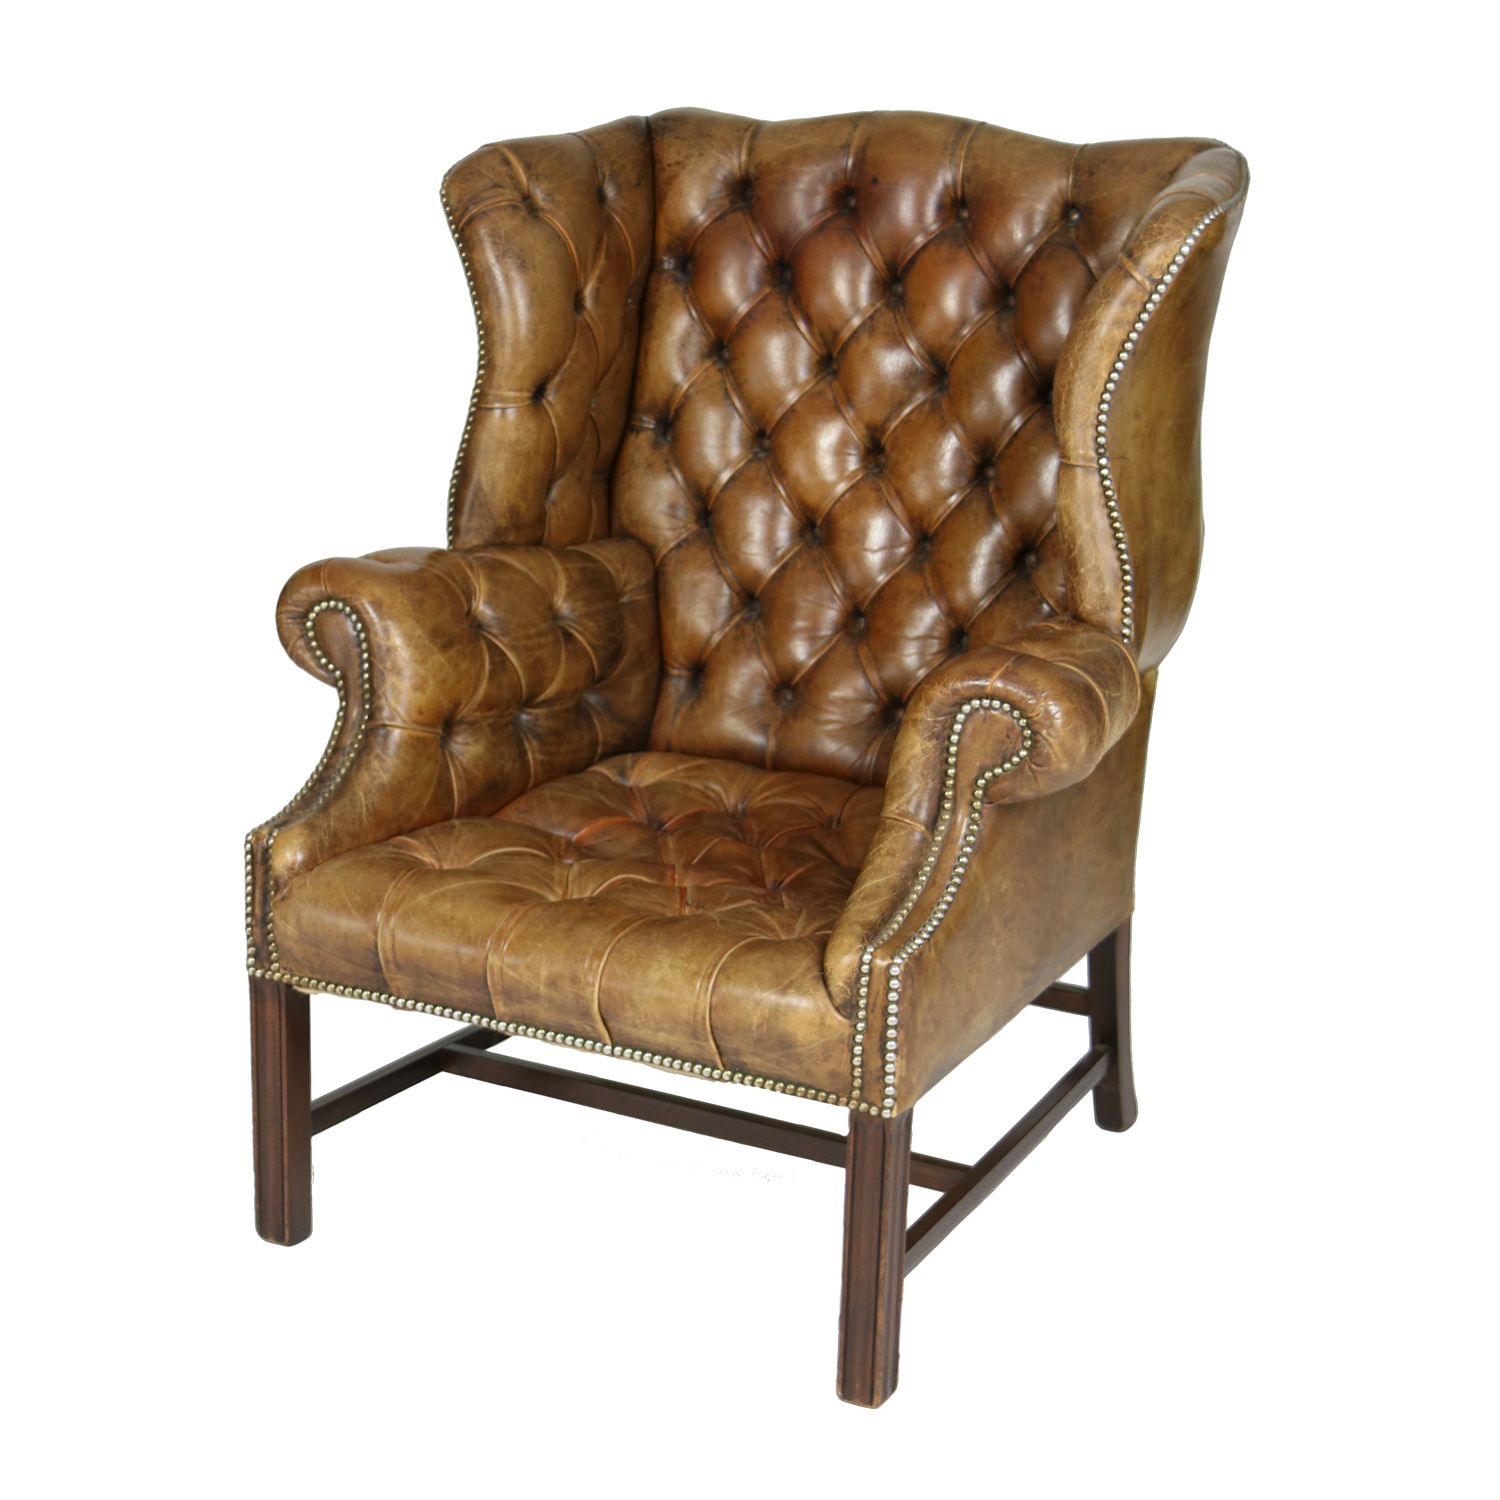 Brown Leather Wingback Chair An Elegant Brown Tufted Leather And Mahogany Wing Chair With Tight Seat English Circa 1860